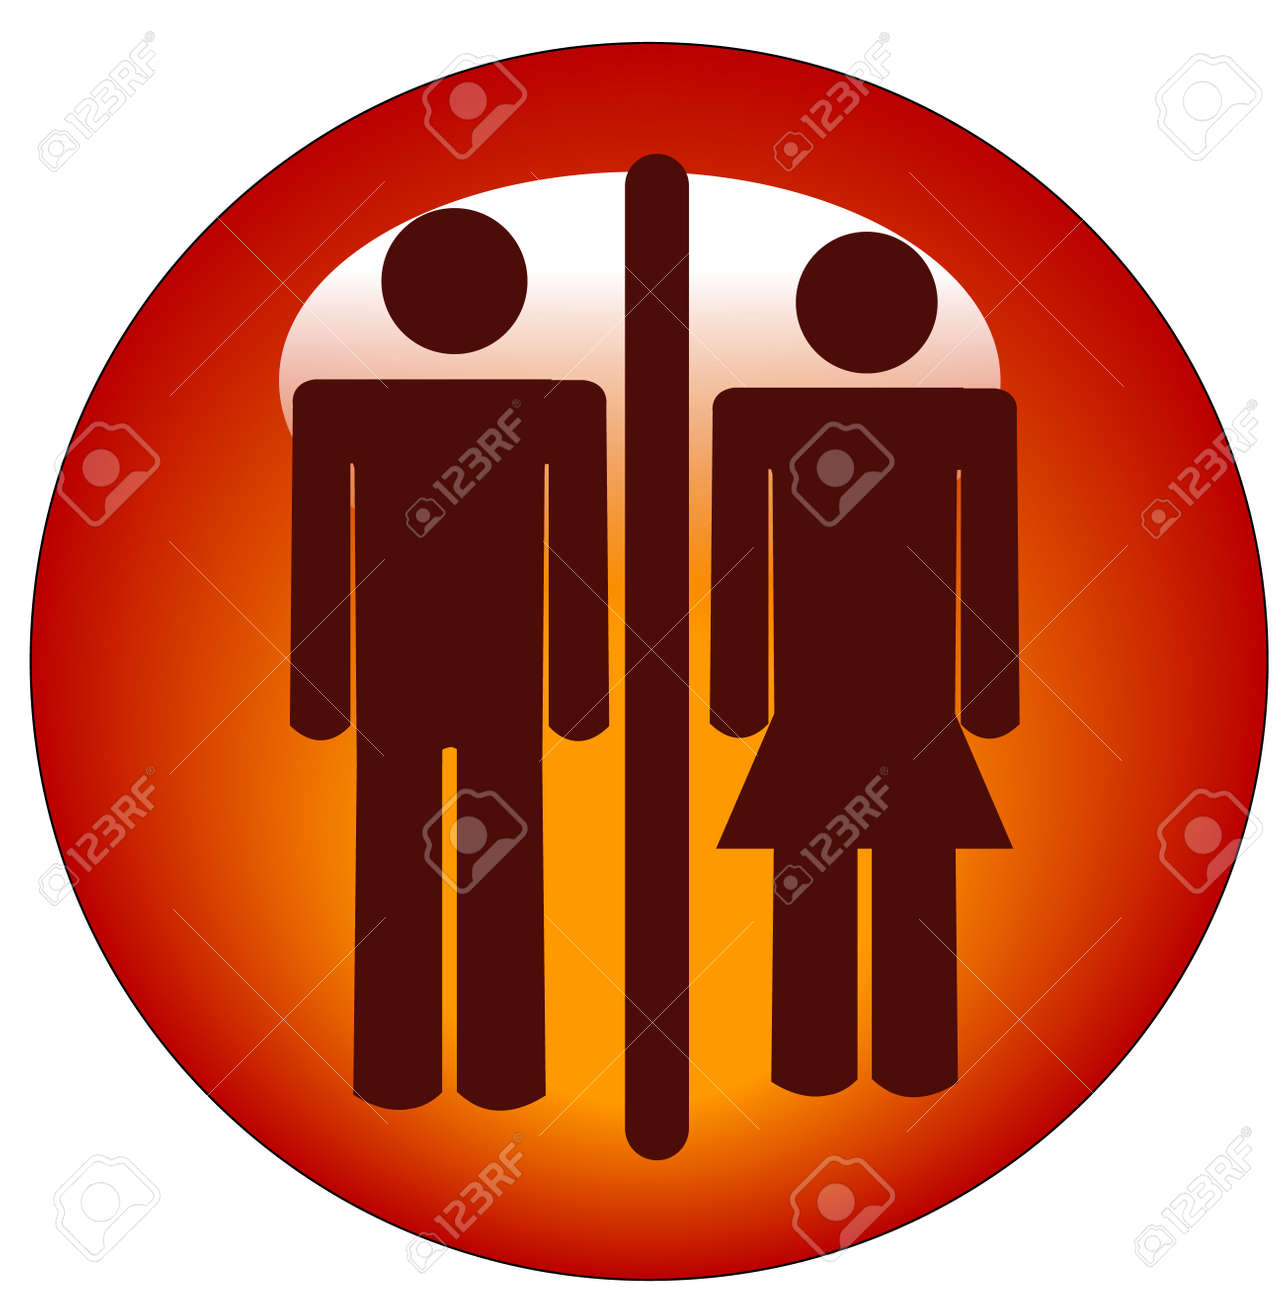 red stick figure man and woman or couple on round button or icon Stock Vector - 3296239